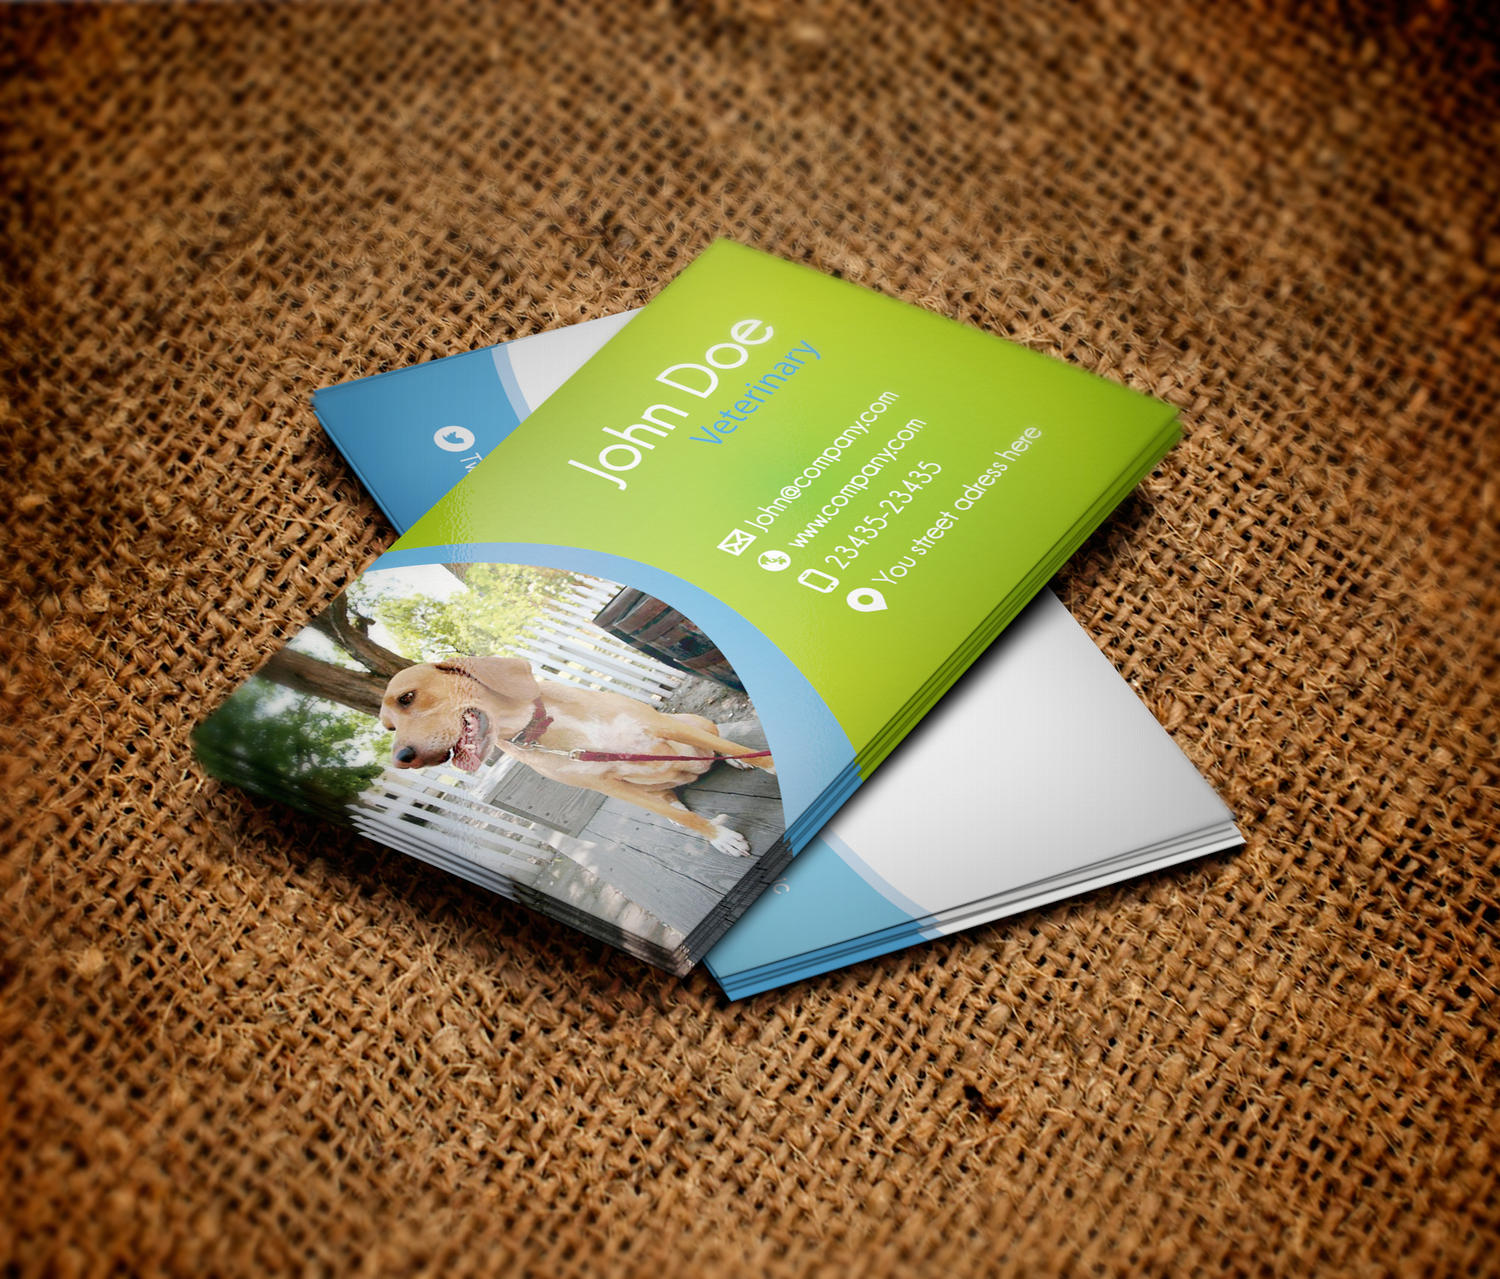 Card Design Professional by gassh - 18164